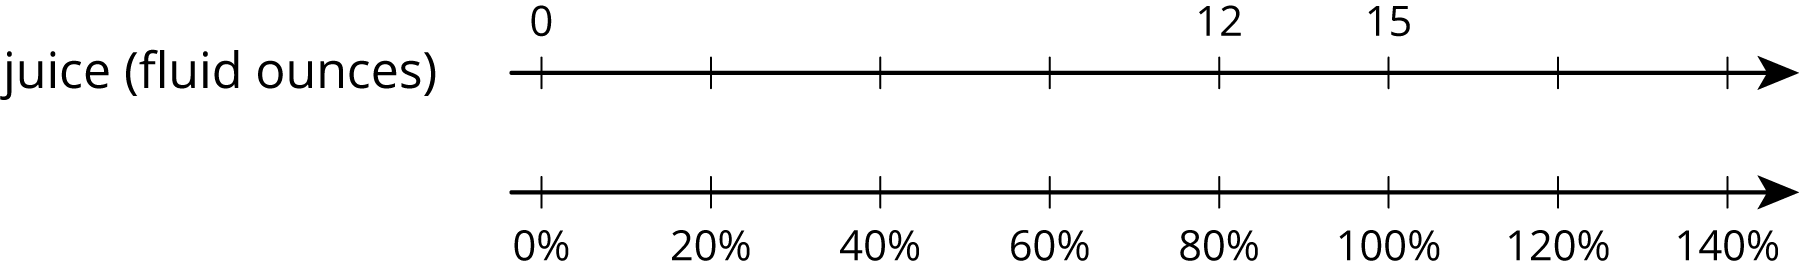 """A double number line for """"juice in fluid ounces"""" with 8 evenly spaced tick marks. The top number line has the number zero on the first tick mark, 12 on the fifth, and 15 on the sixth. The bottom number line, starting with the first tick mark, zero percent, 20 percent, 40 percent, 60 percent, 80 percent, 100 percent, 120 percent and 140 percent are labeled."""